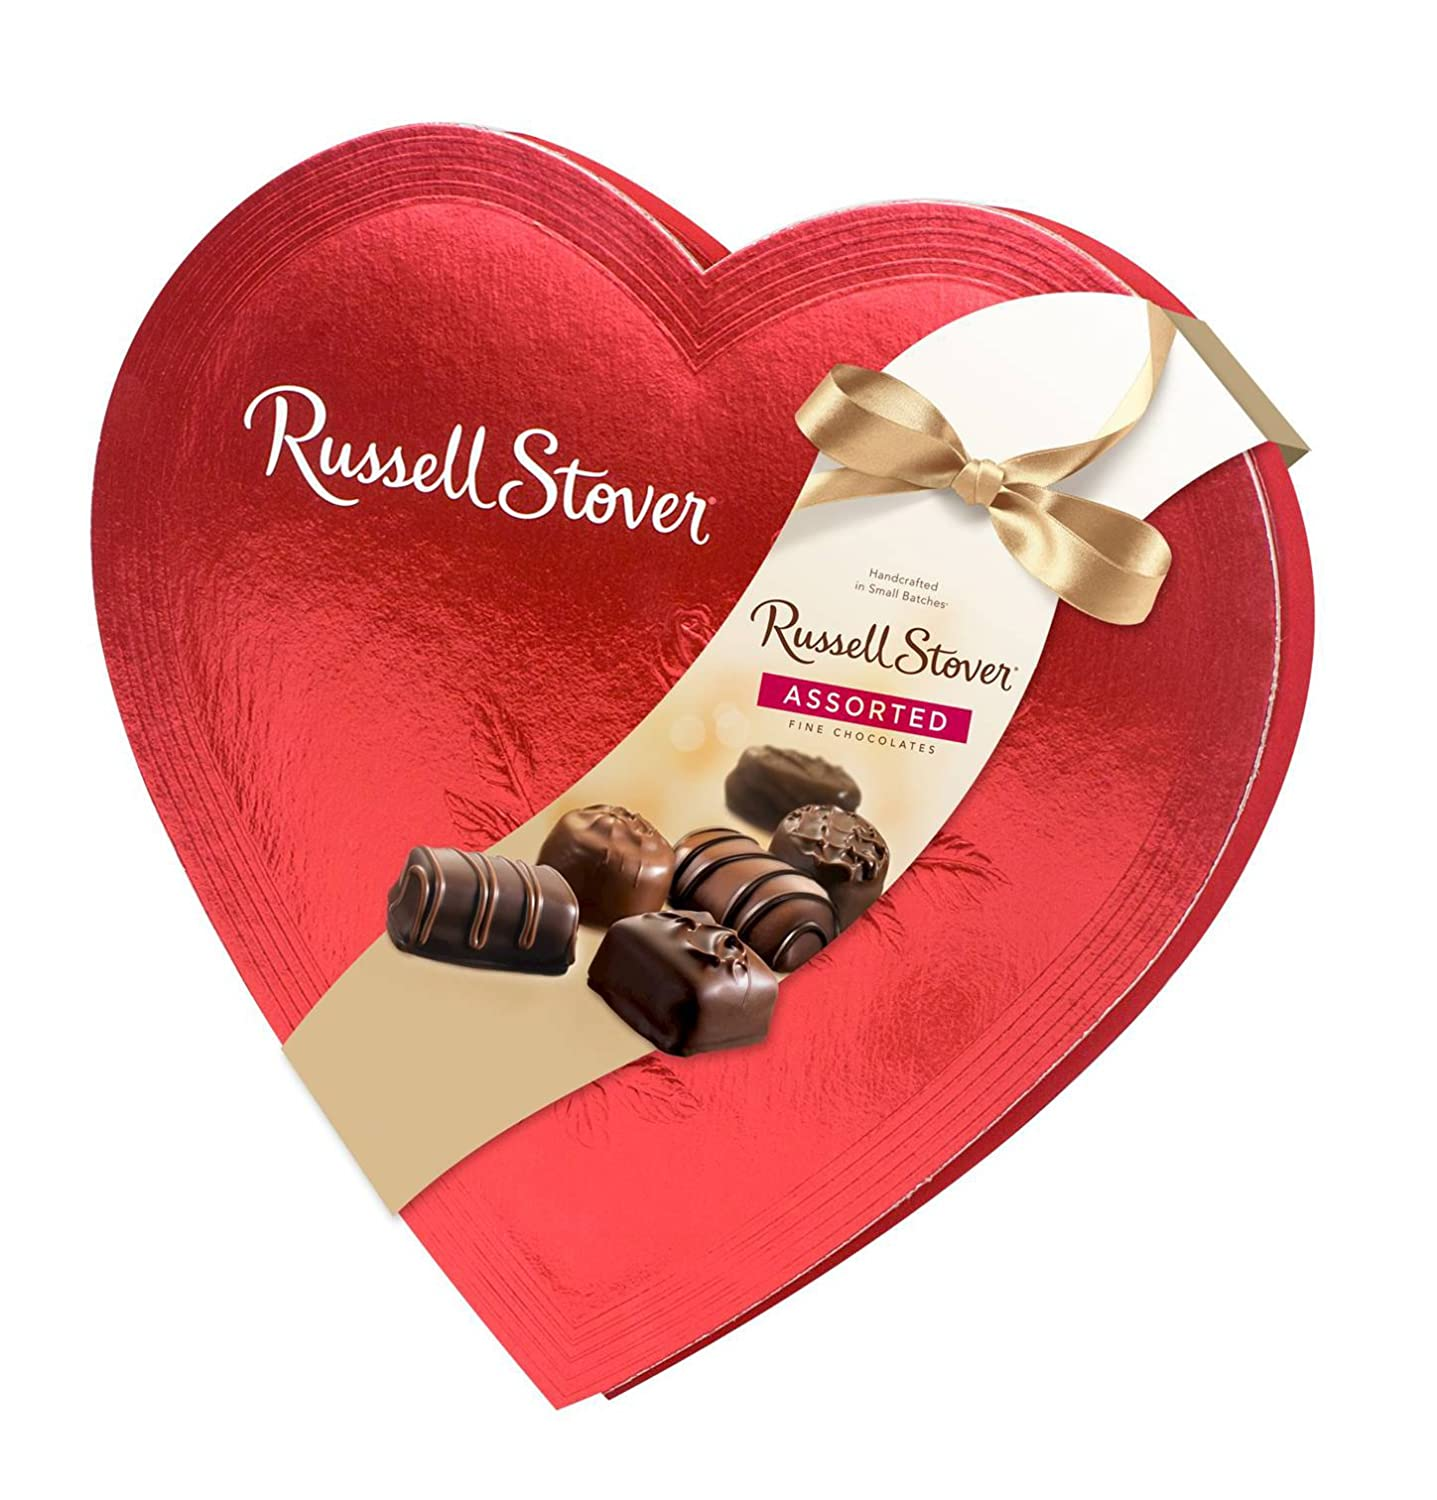 Amazon.com : Russell Stover Candies Red Foil Heart Chocolate ...